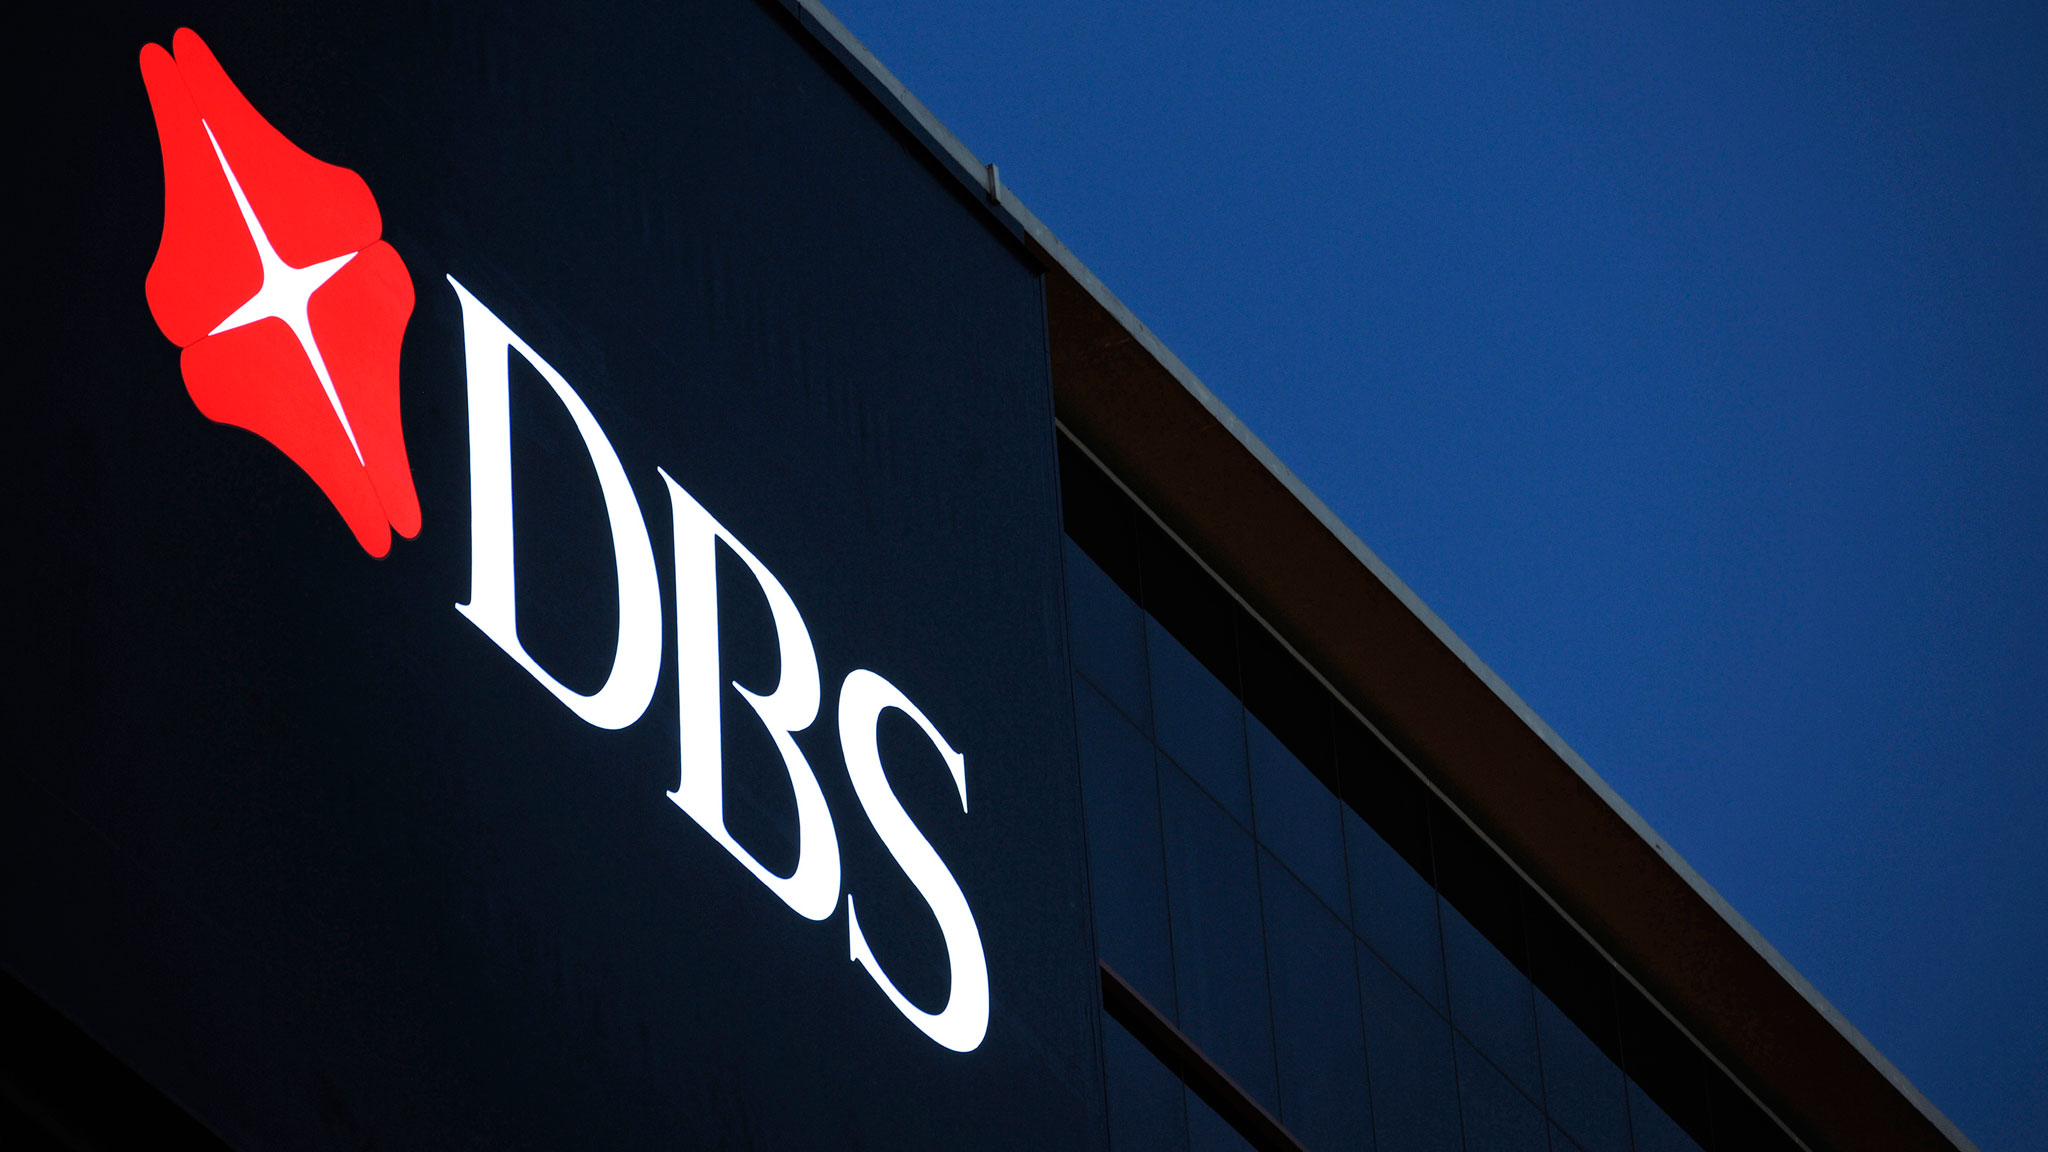 DBS Group: How To Make 18% In 2019